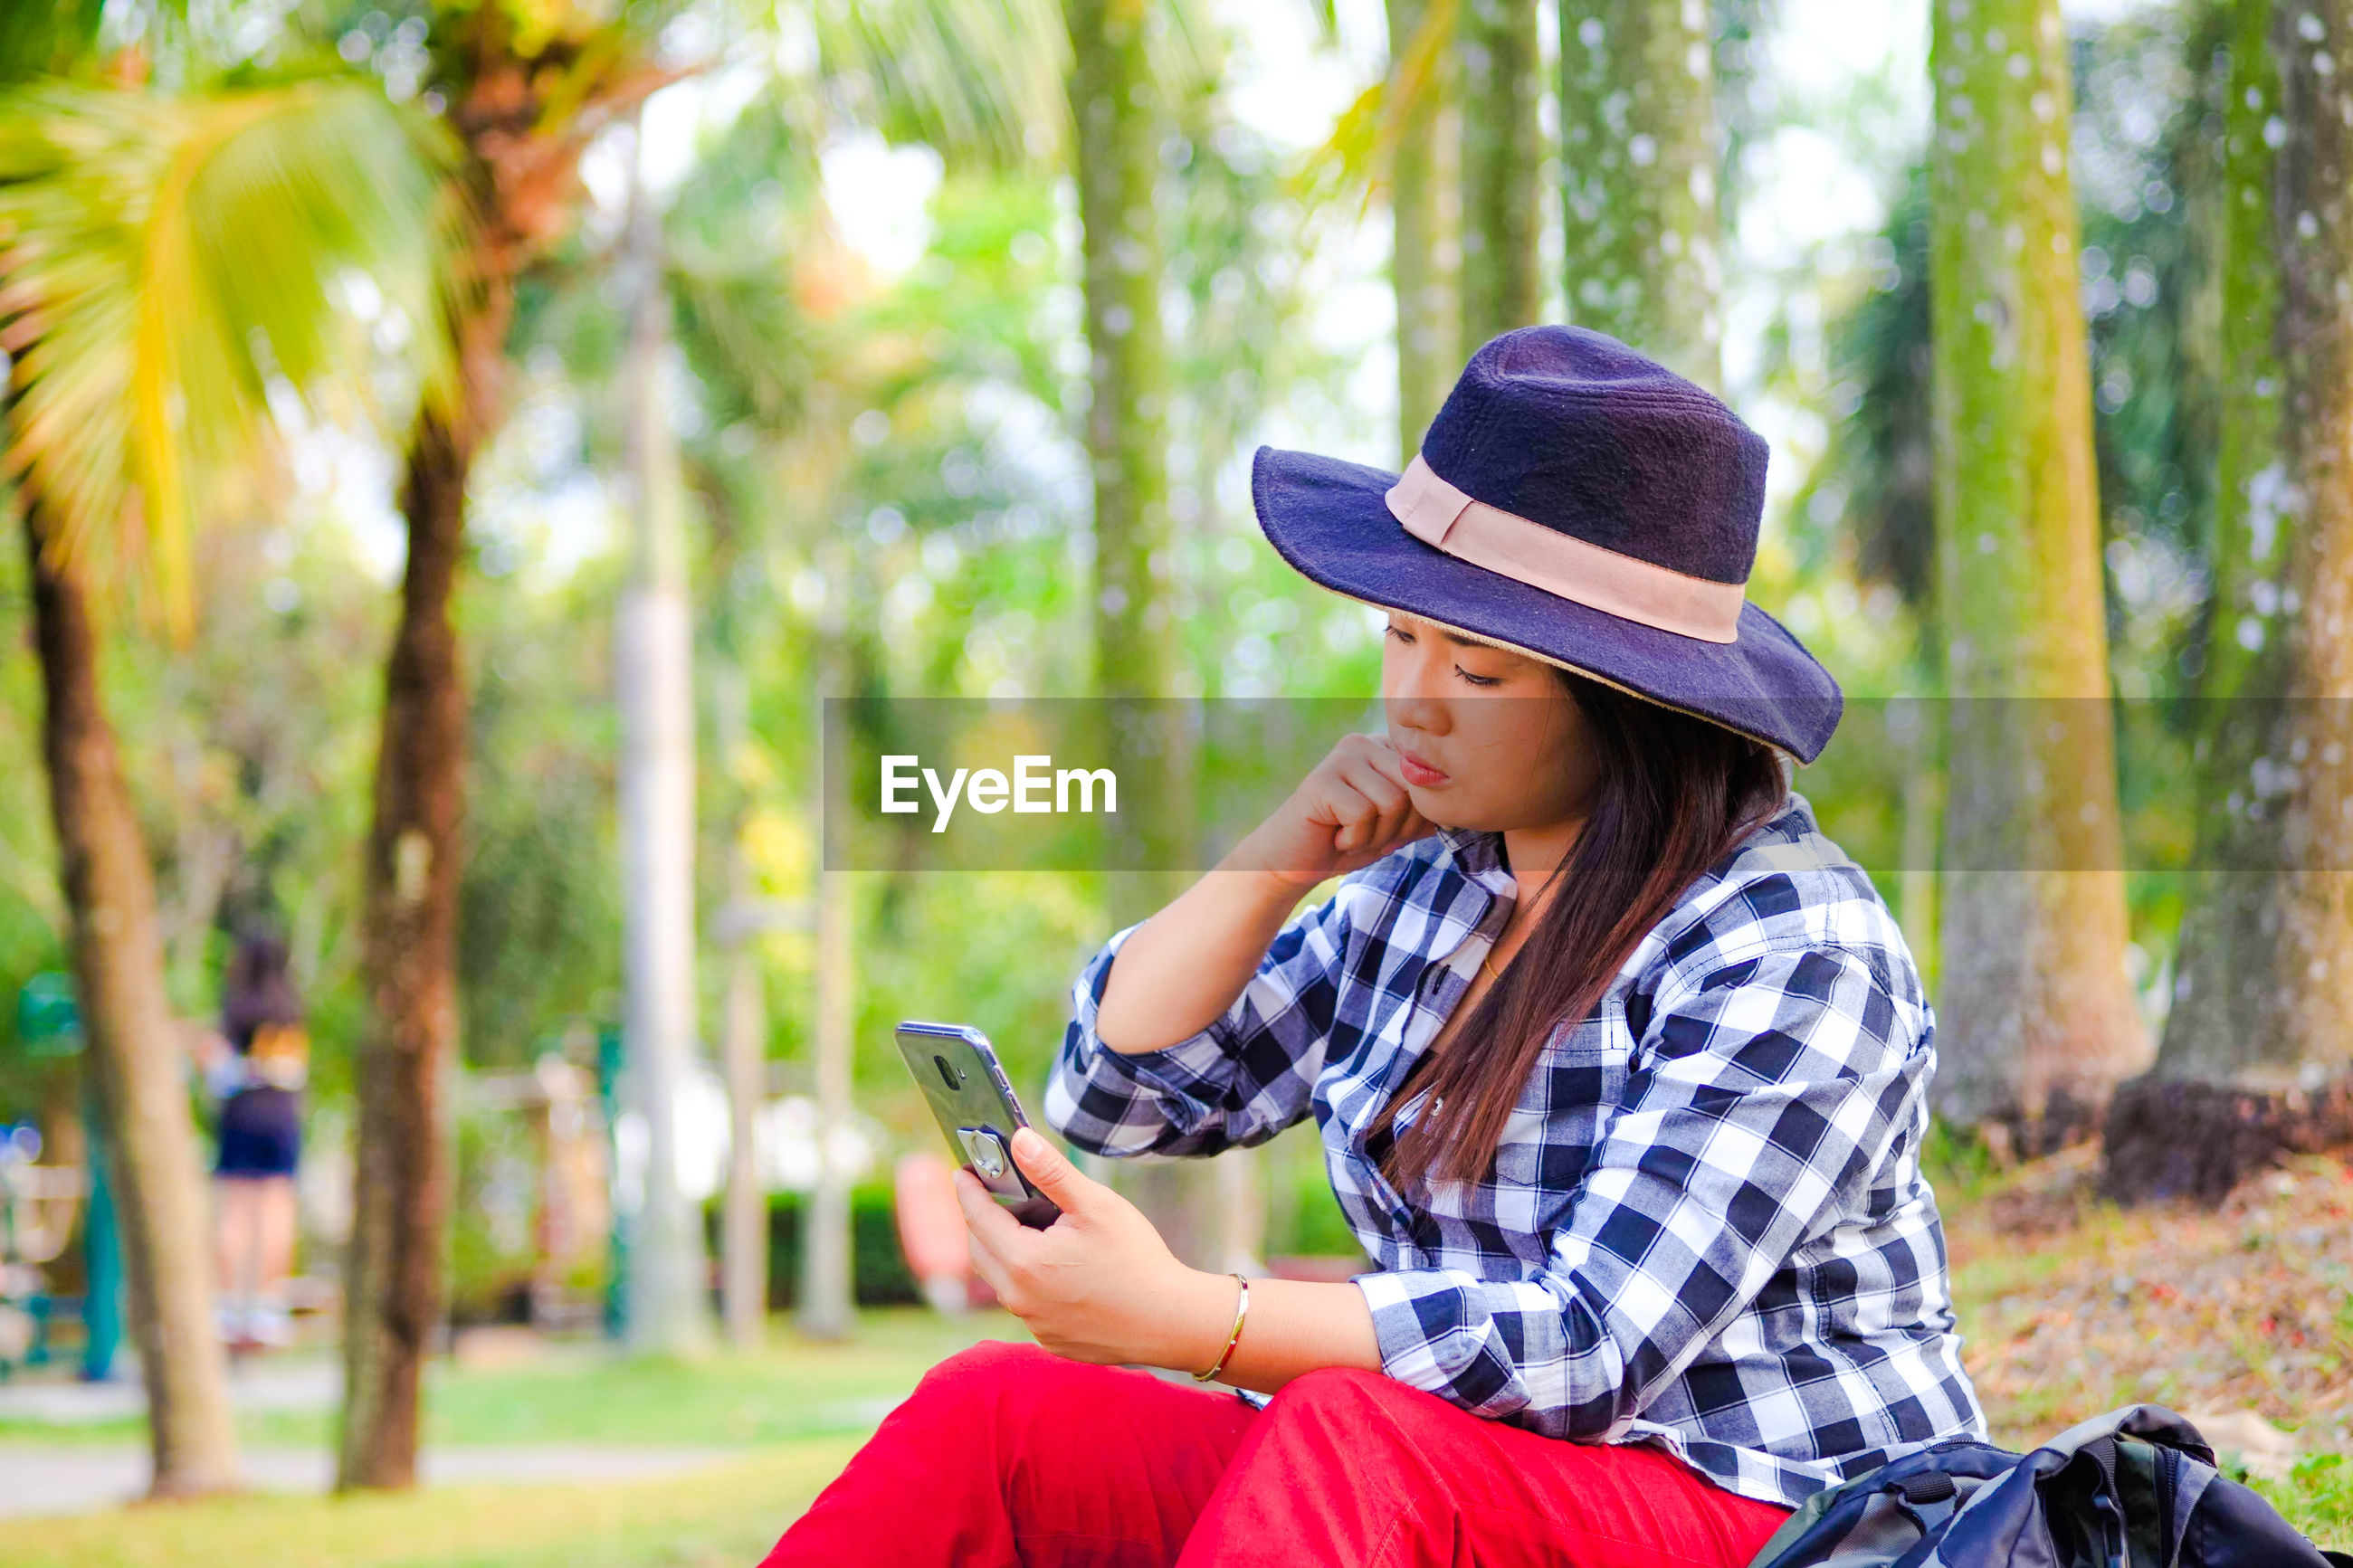 Woman using mobile phone while sitting against trees